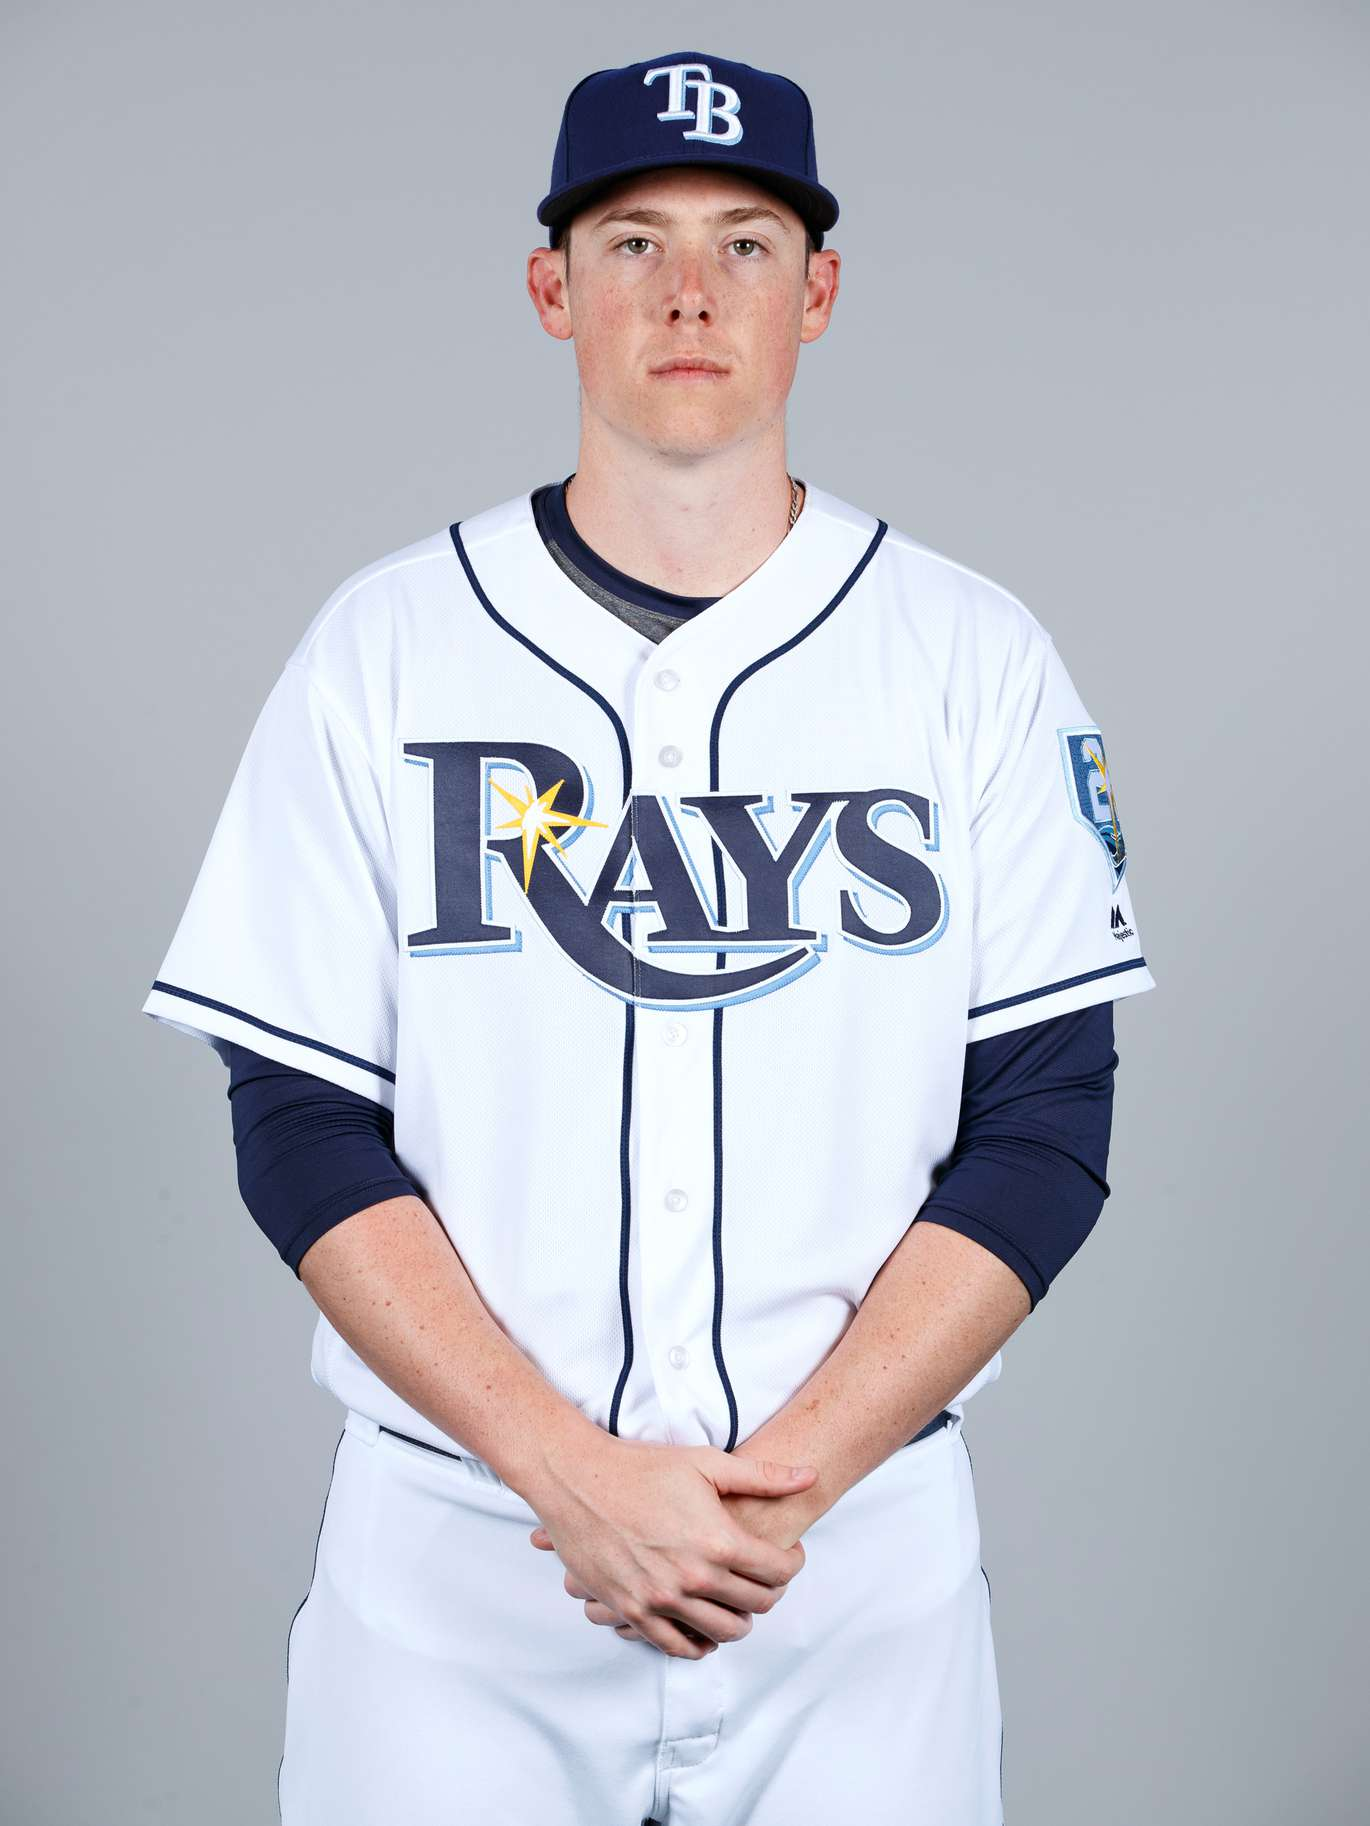 Ryan Yarbrough #48 of the Tampa Bay Rays poses during Photo Day on Sunday, February 18, 2018 at Charlotte Sports Park in Port Charlotte, Florida. (Photo by Mike Carlson/MLB Photos via Getty Images) *** Local Caption *** Ryan Yarbrough